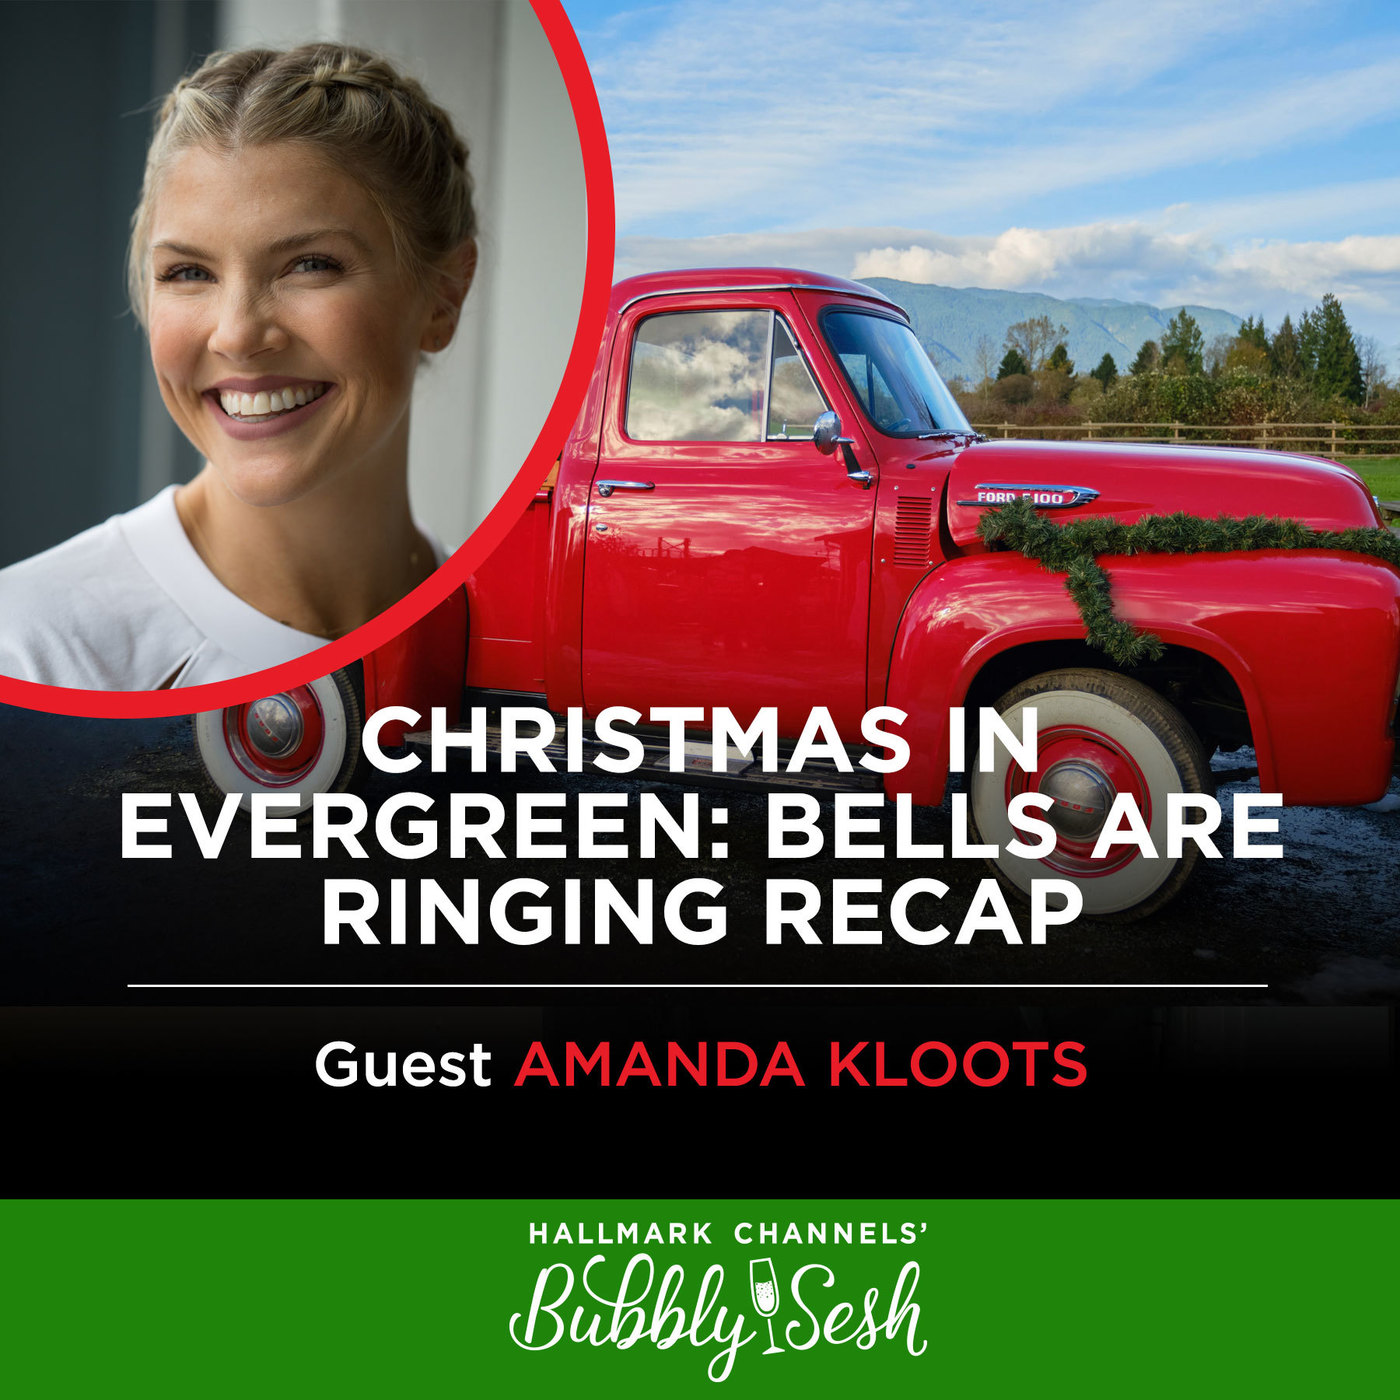 Christmas in Evergreen: Bells Are Ringing Recap with Guest Amanda Kloots